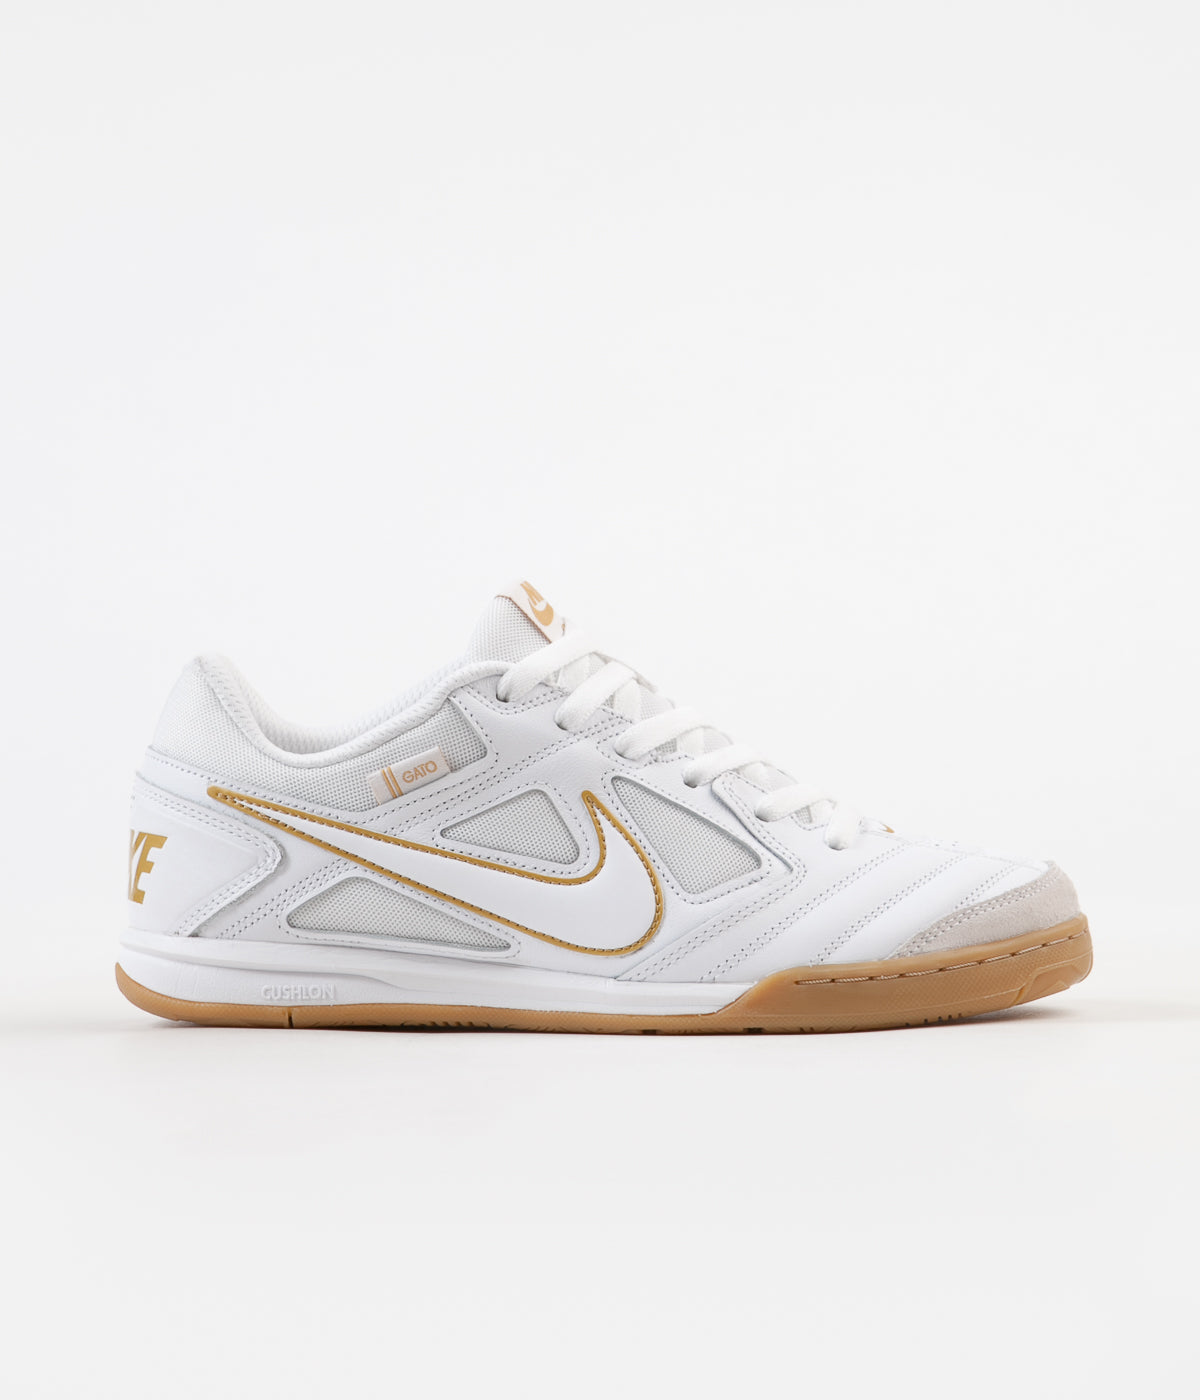 buy popular 06776 19e91 Nike SB Gato Shoes - White   White - Metallic Gold